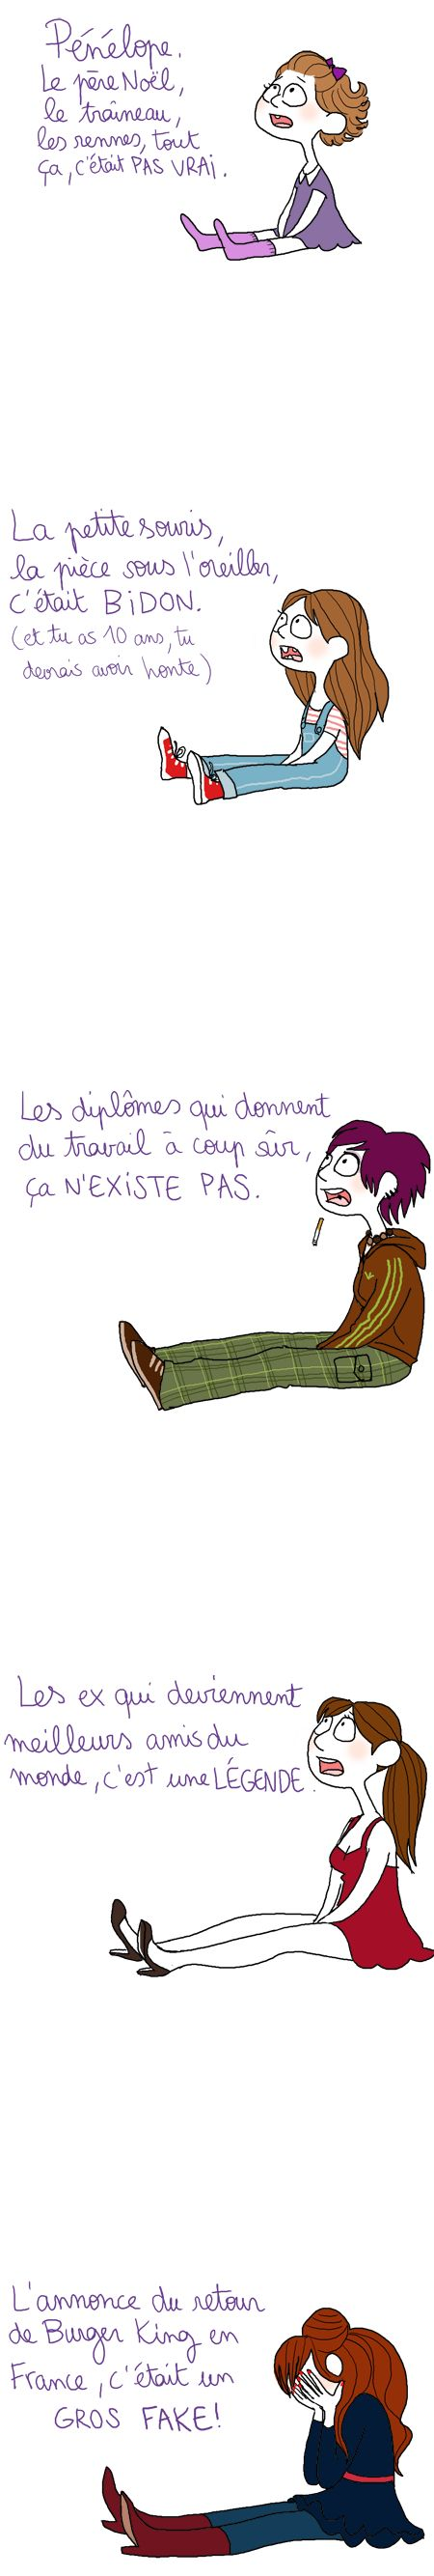 La vie n'est qu'illusions... / Get over it !